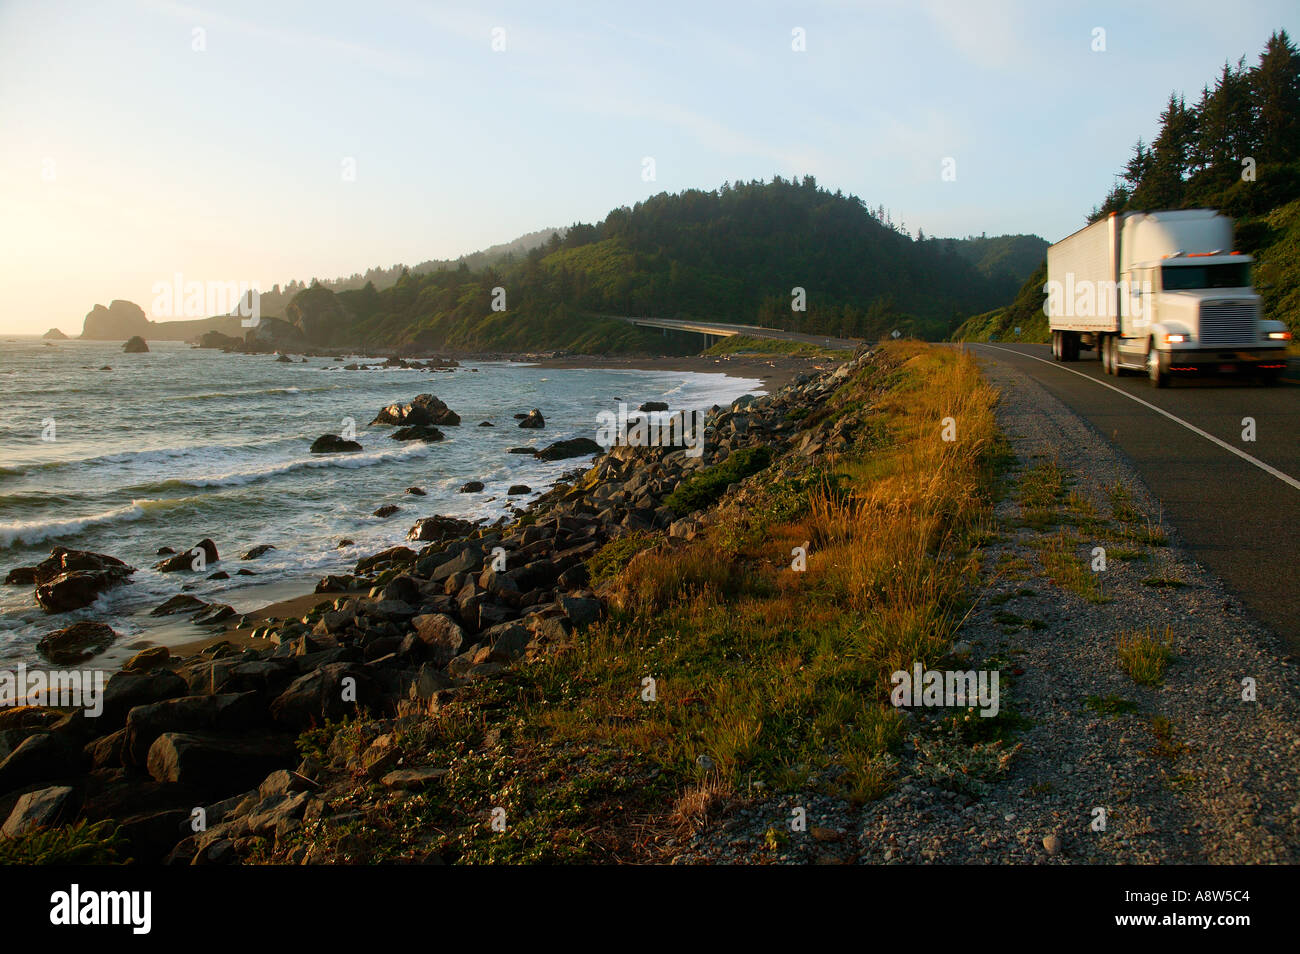 A truck on the Redwood Highway or Highway 101 passes by False Klamath Cove and Wilson Creek Del Norte Coast - Stock Image